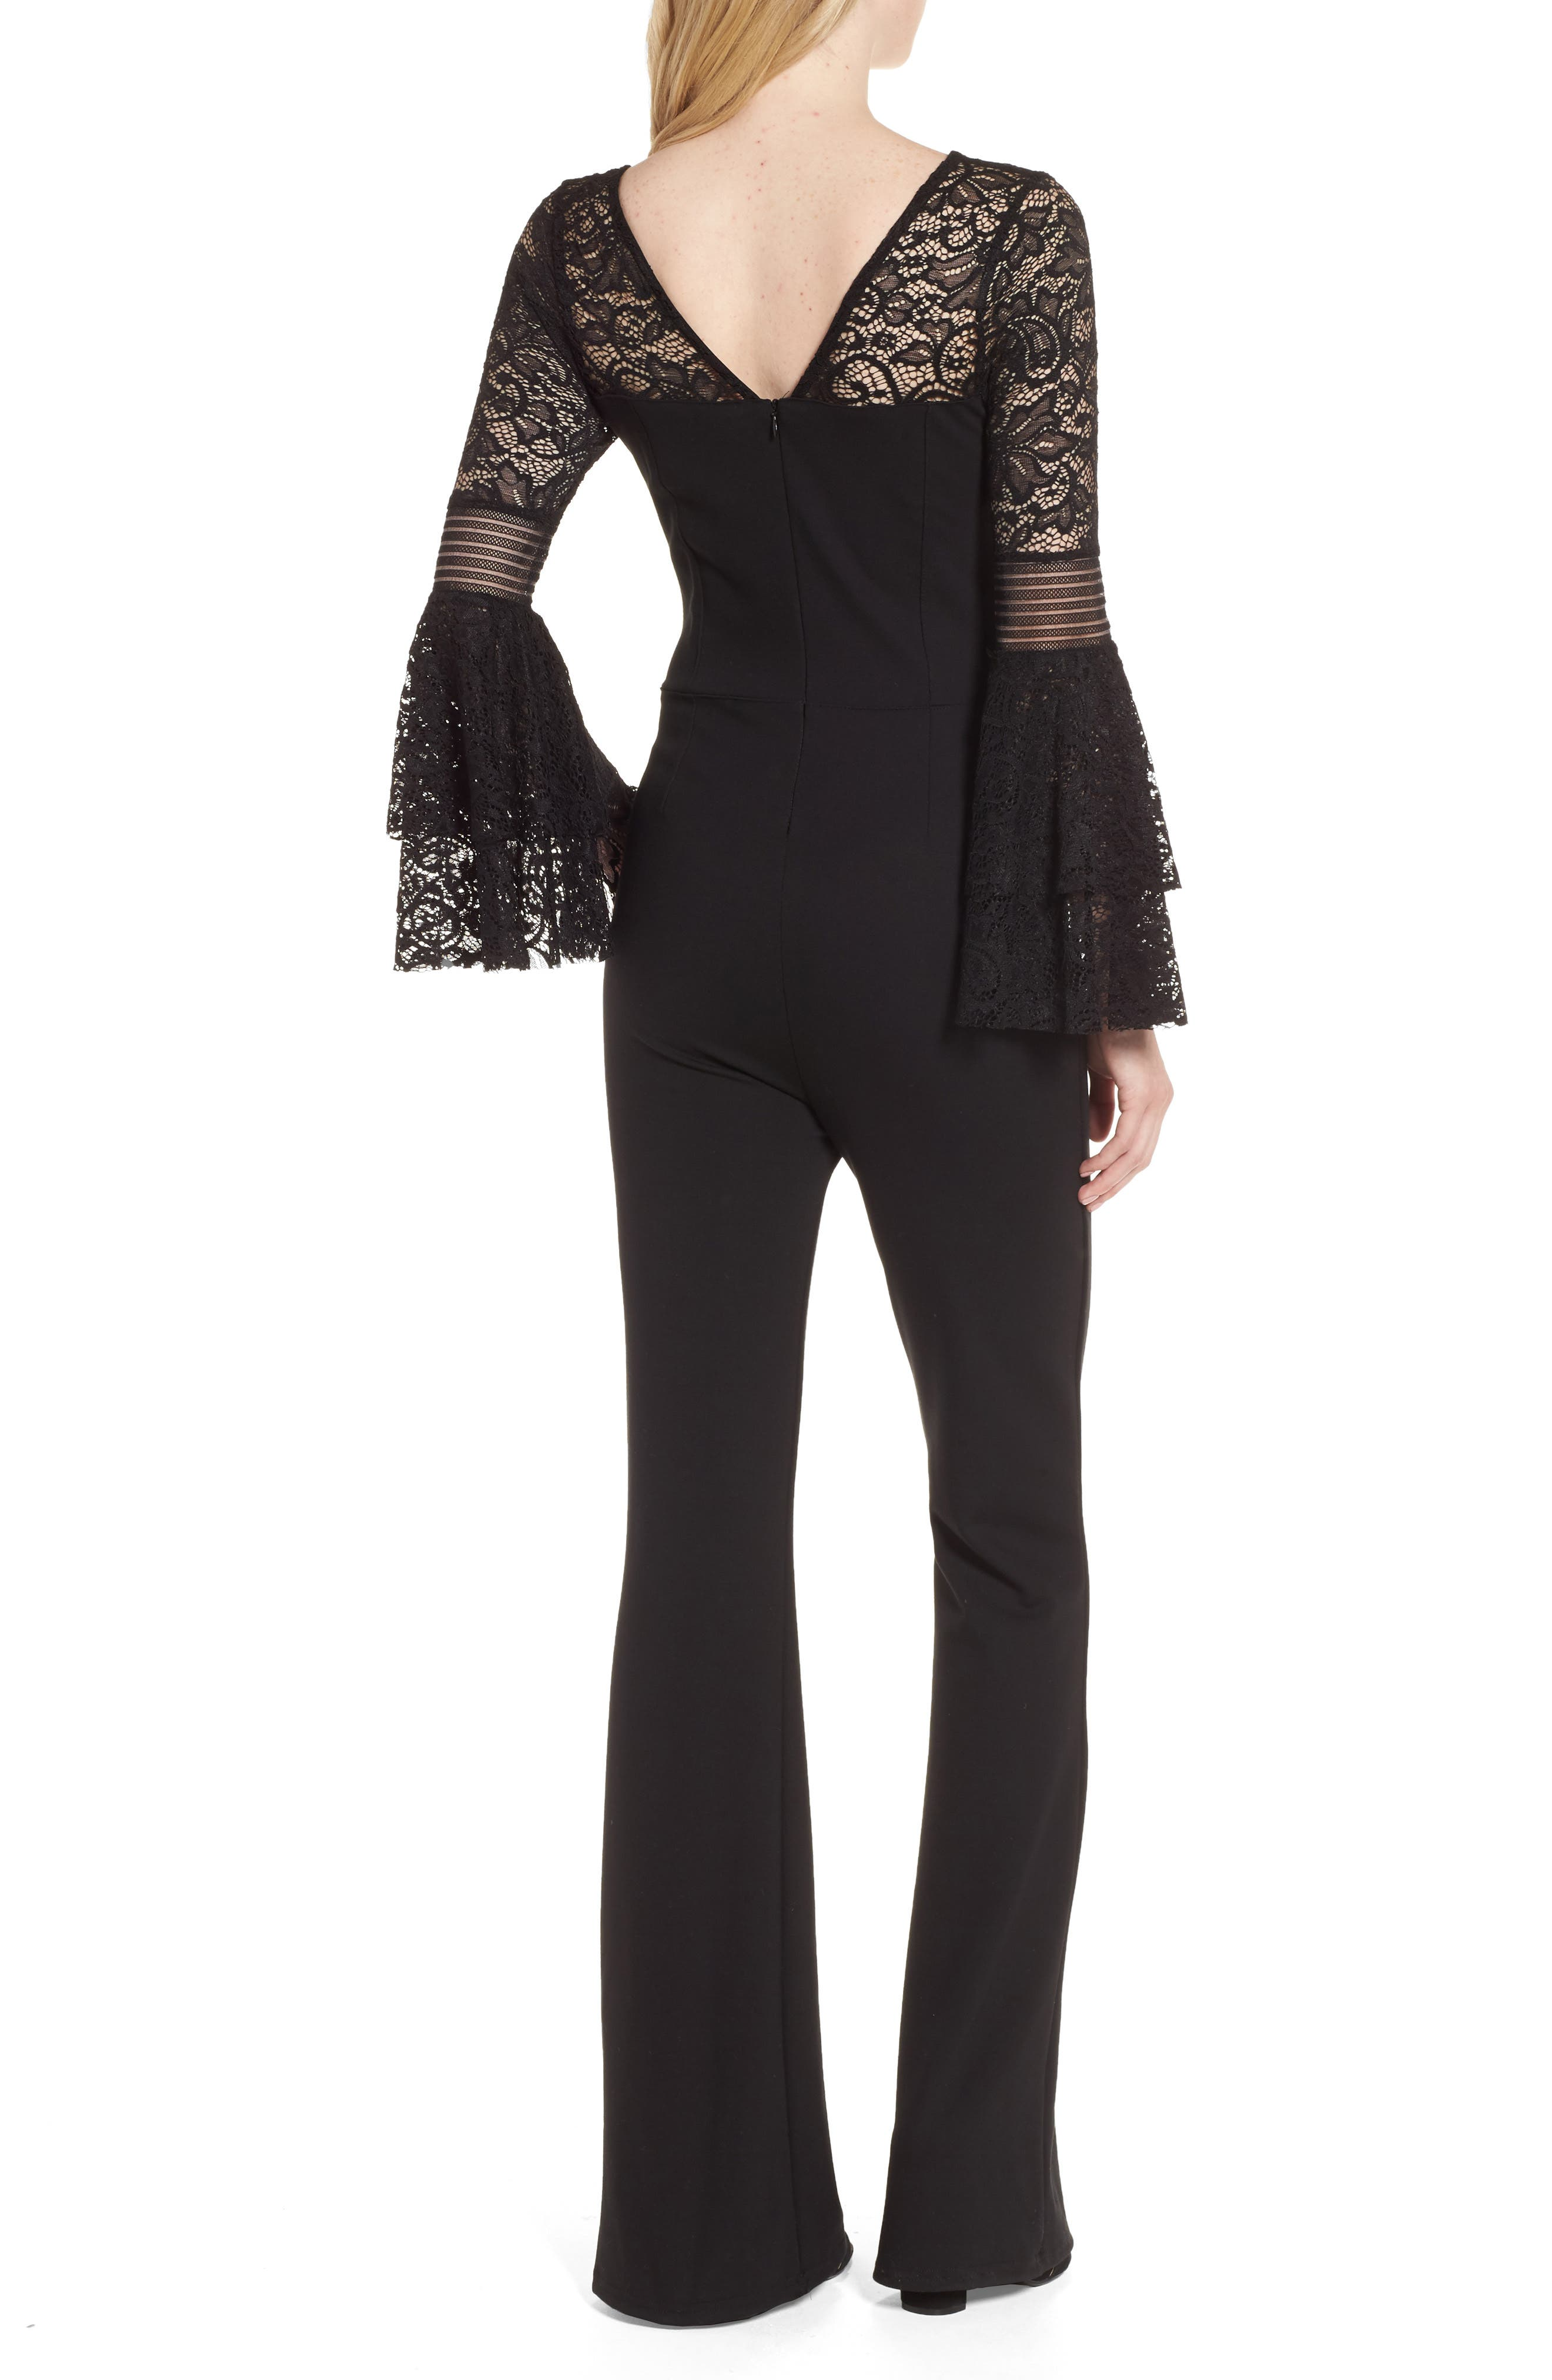 Floetry Lace Bell Sleeve Romper,                             Alternate thumbnail 2, color,                             Black